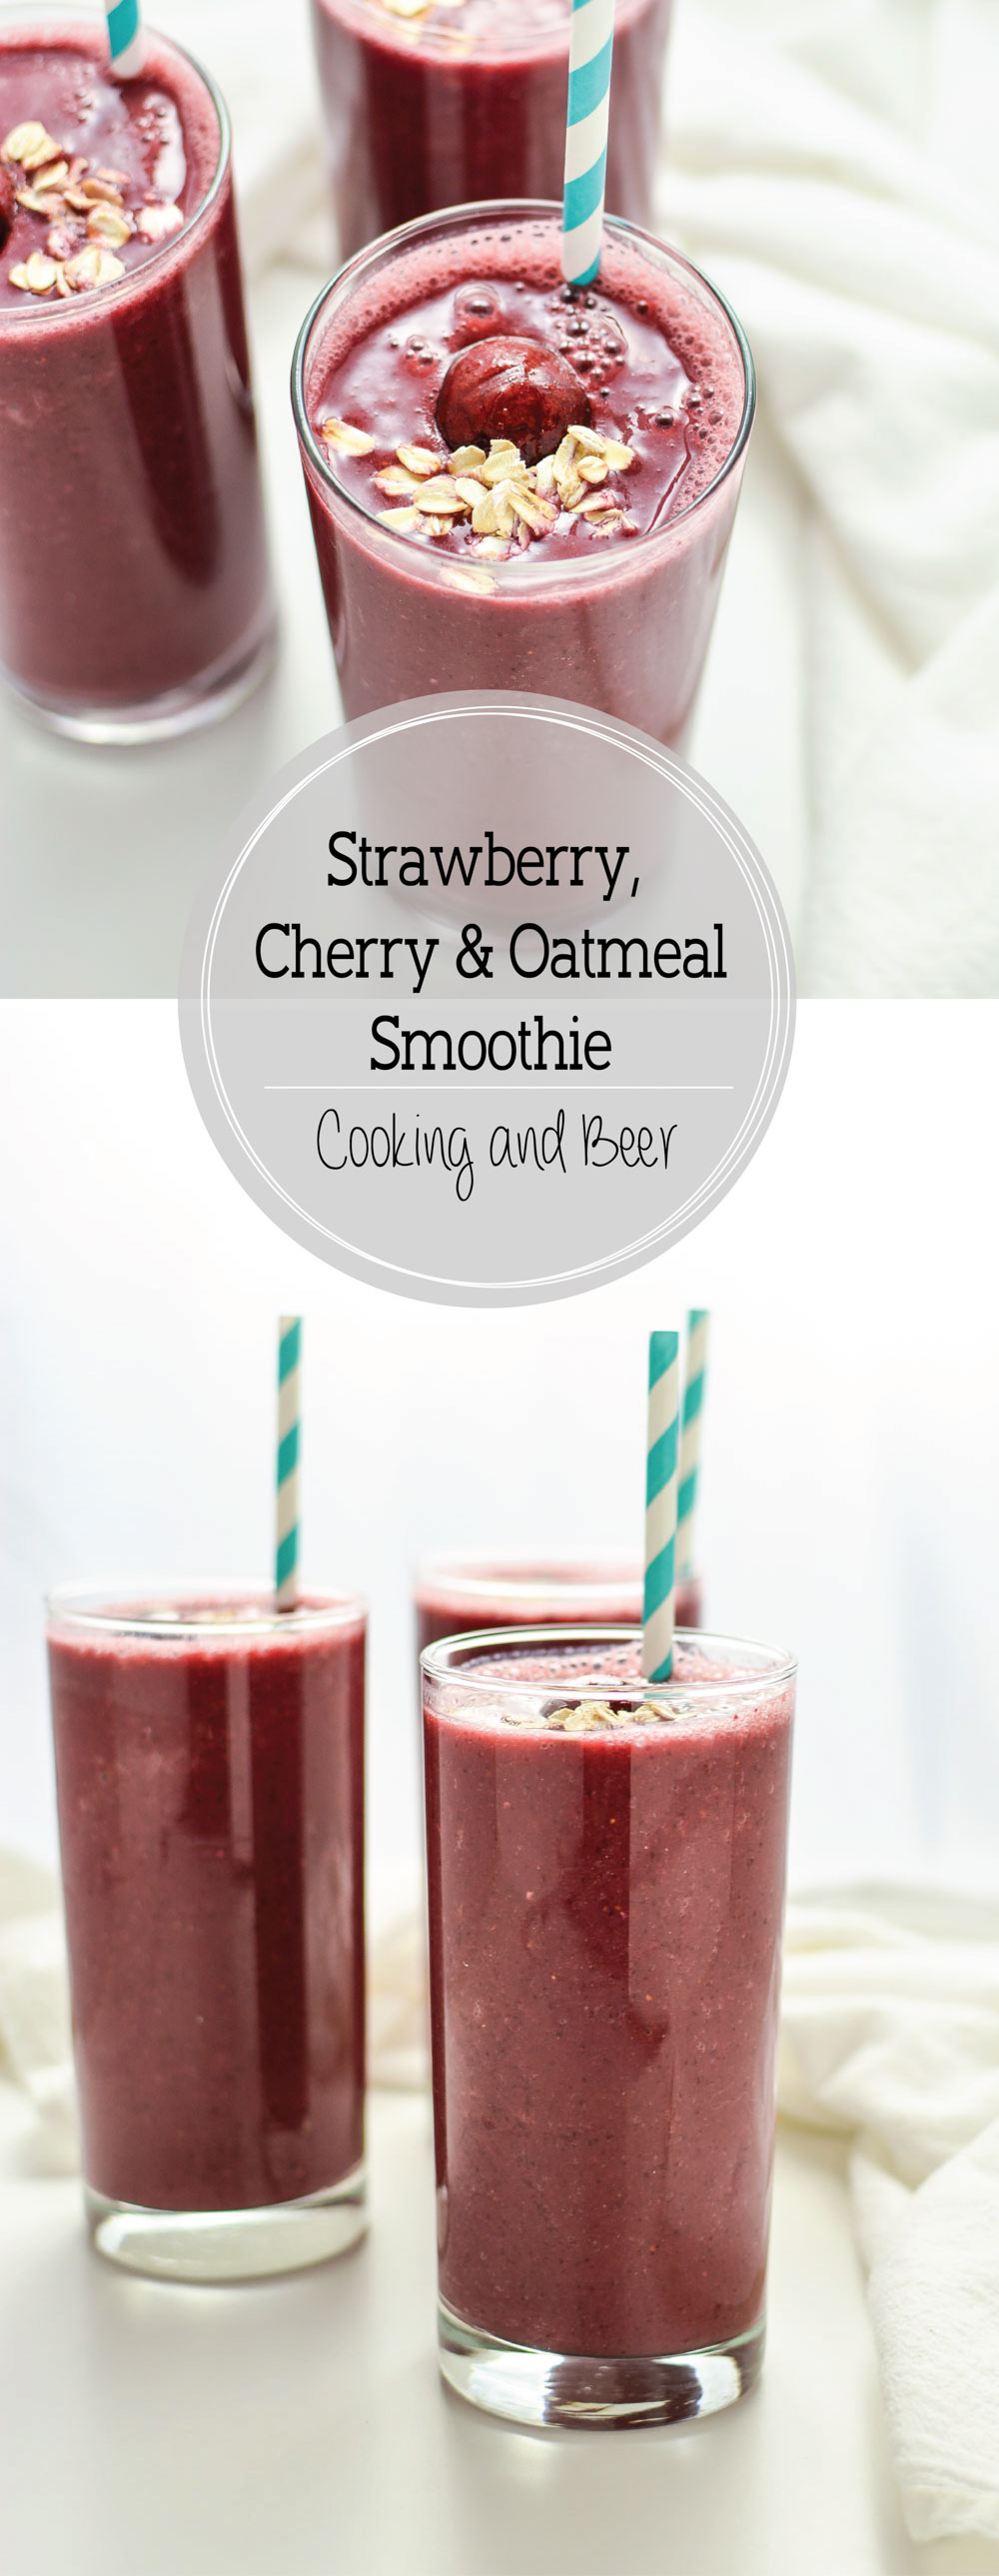 Strawberry Cherry Oatmeal Smoothies are hearty and filling, making them the perfect quick breakfast solution!